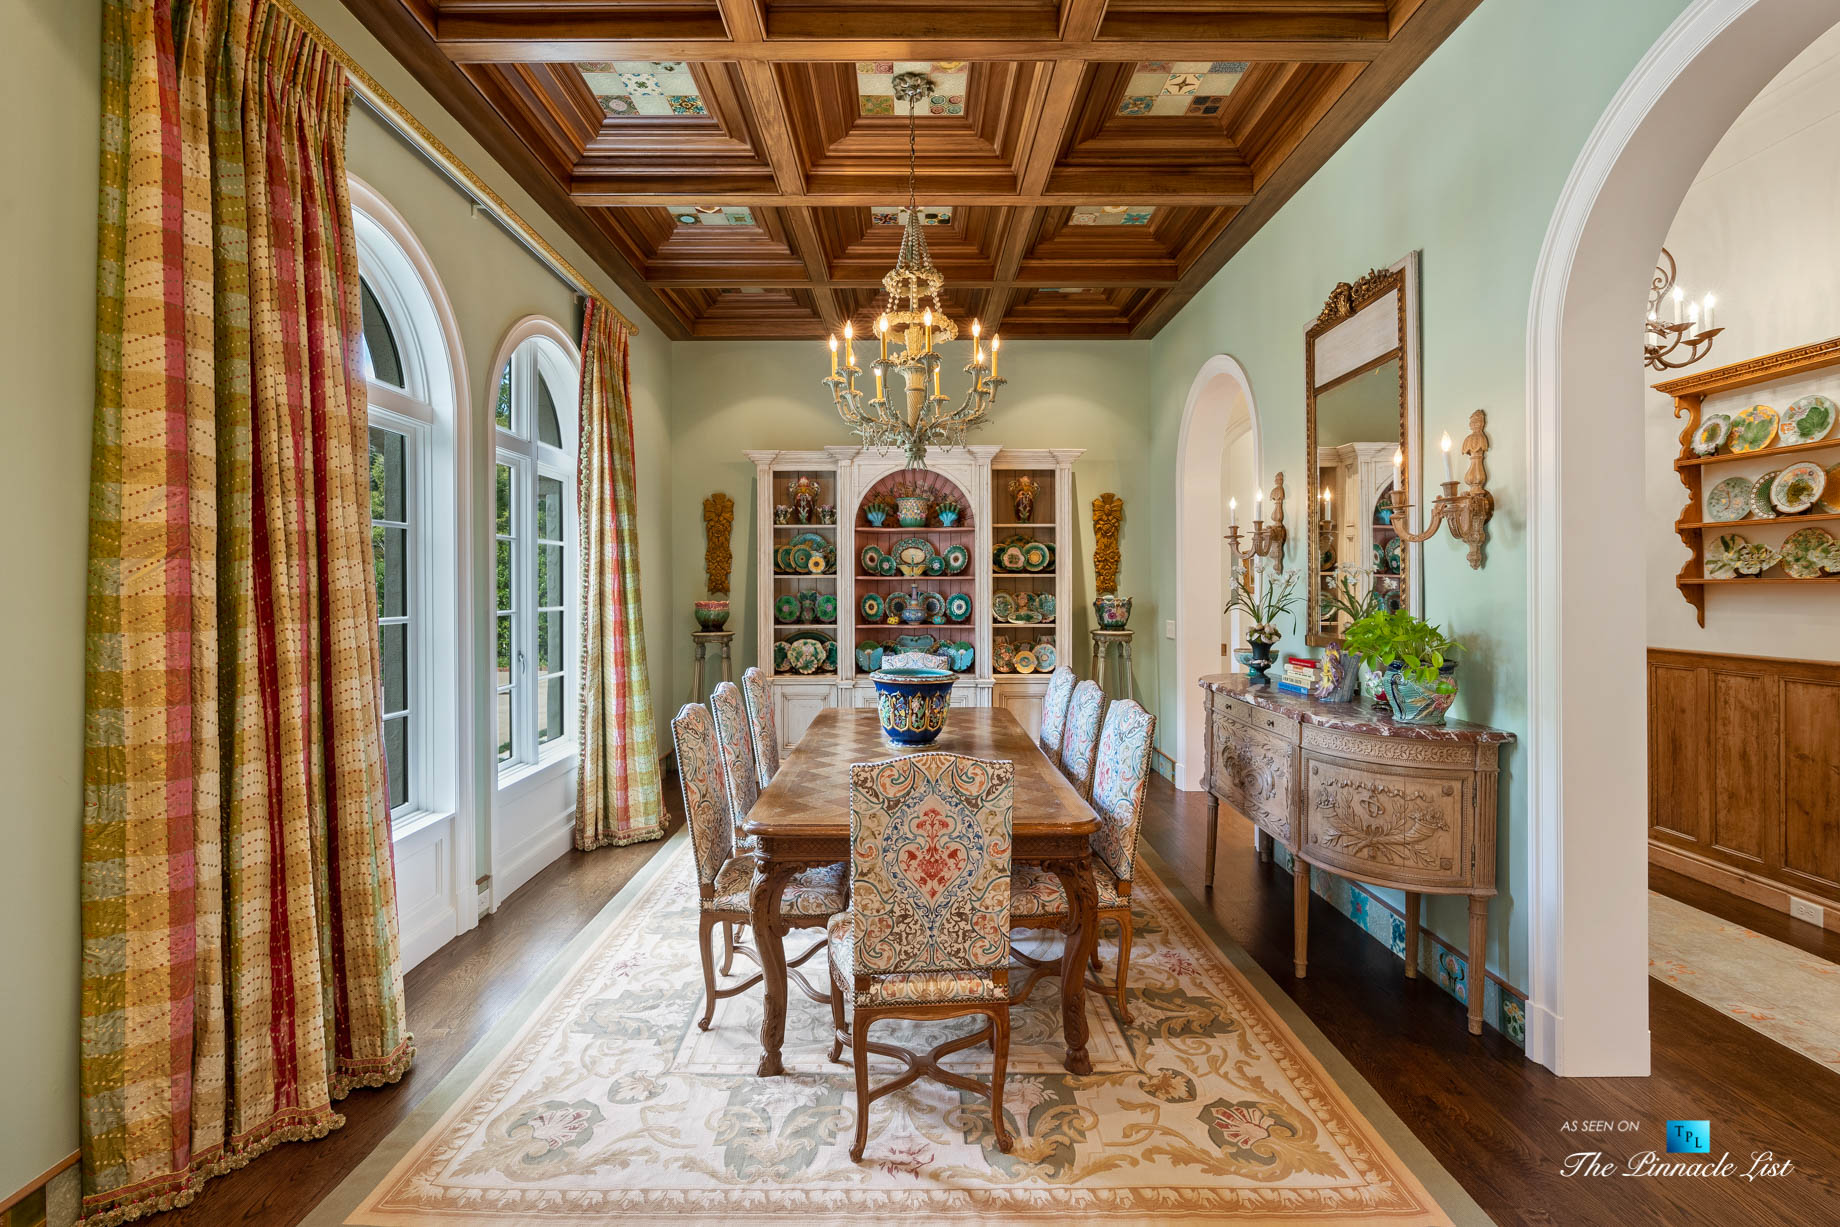 439 Blackland Rd NW, Atlanta, GA, USA - Dining Room with Wood Ceiling - Luxury Real Estate - Tuxedo Park Mediterranean Mansion Home